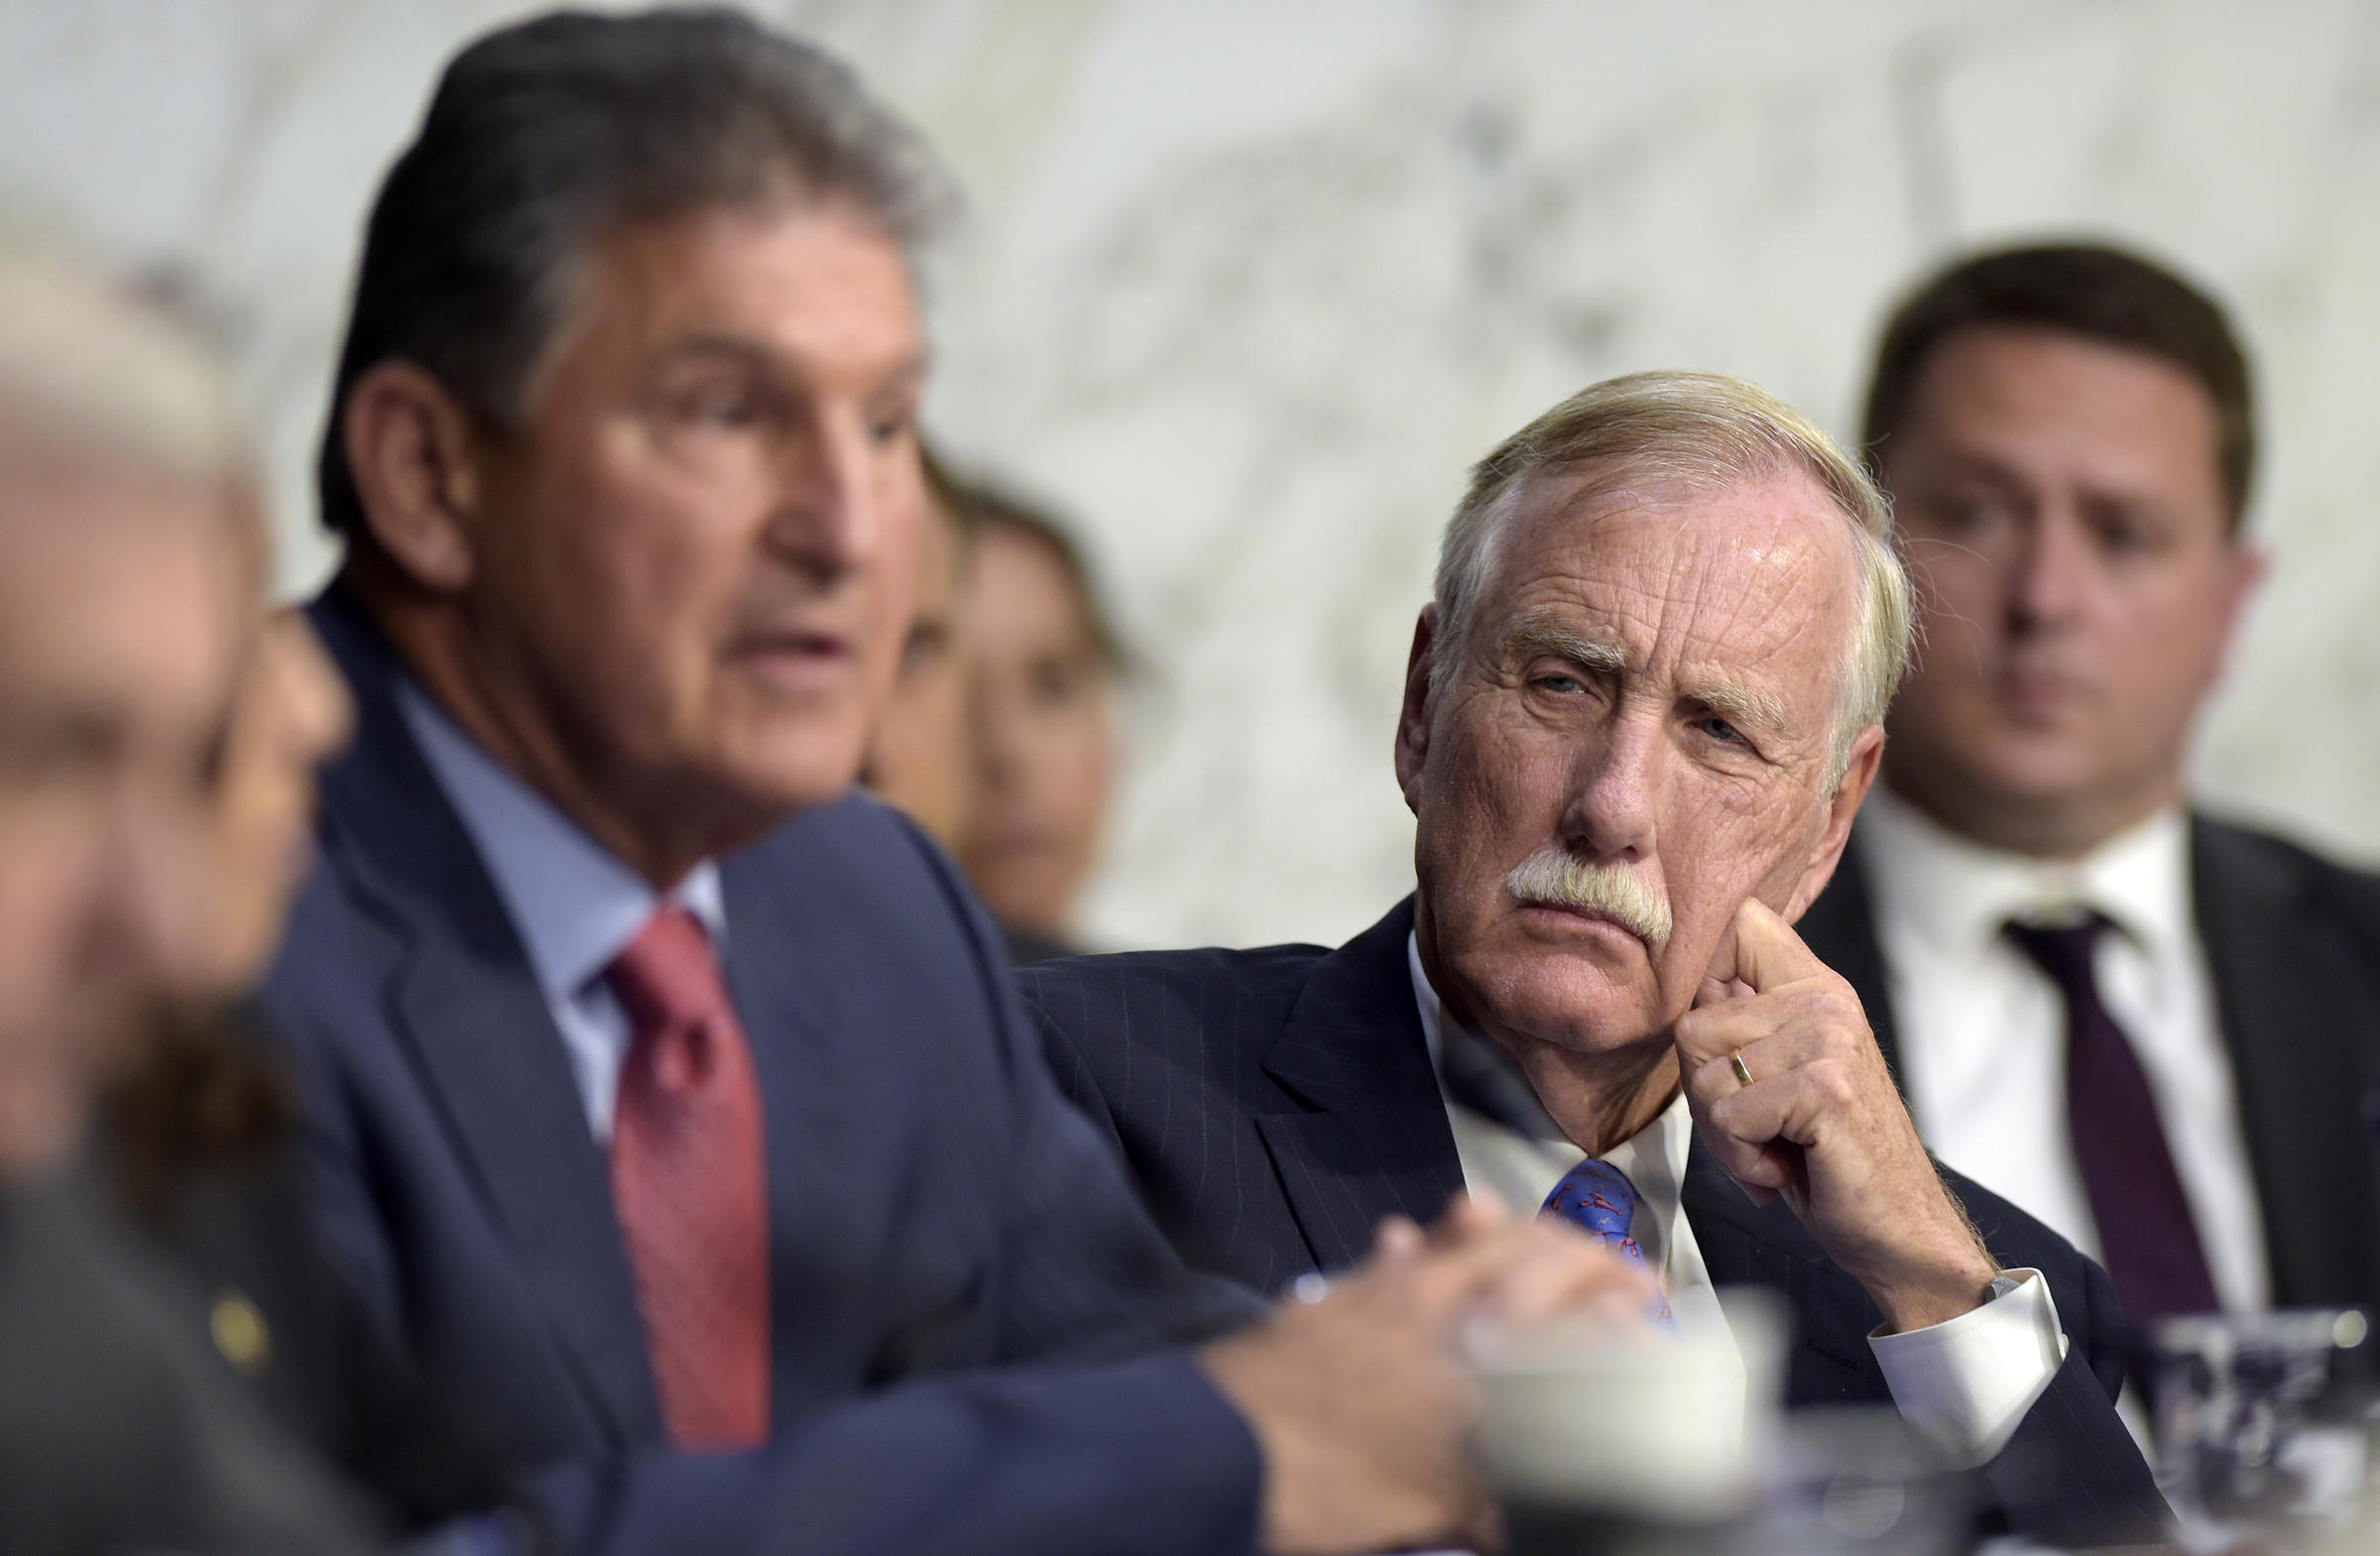 U.S. Sen. Angus King listens during a Senate Intelligence Committee hearing on Capitol Hill in Washington Wednesday